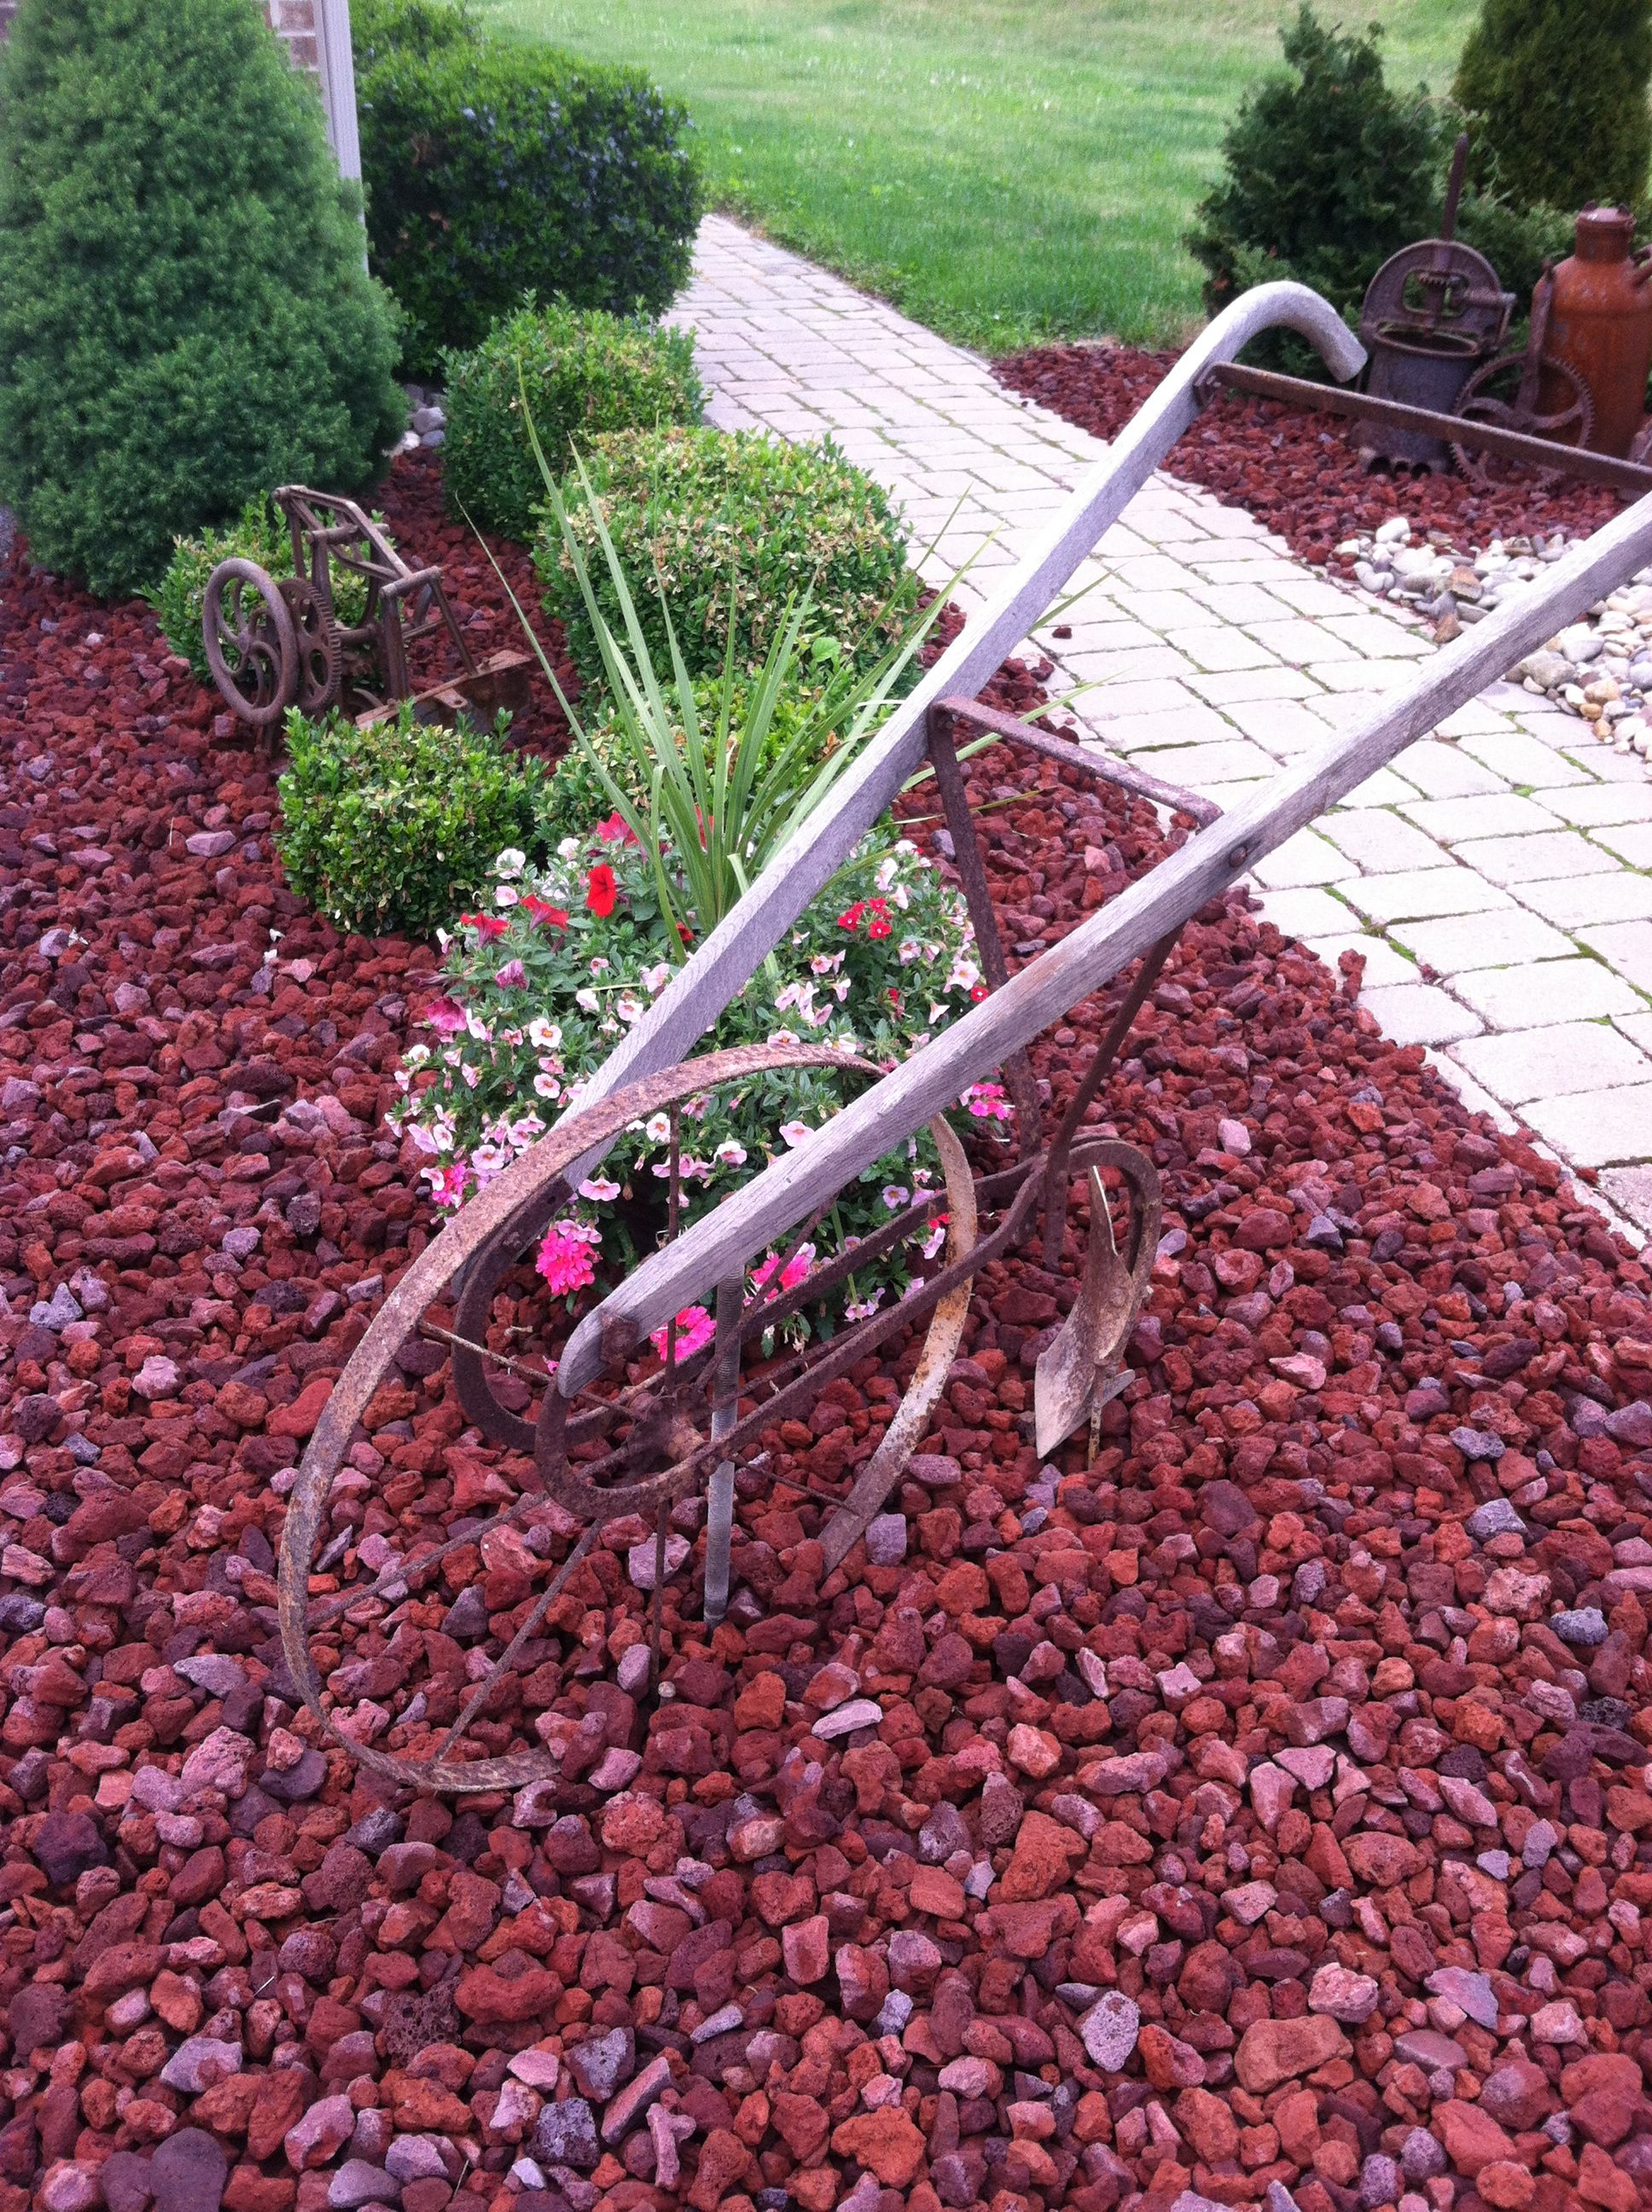 Antique hand plow Landscaping with rocks, Antique